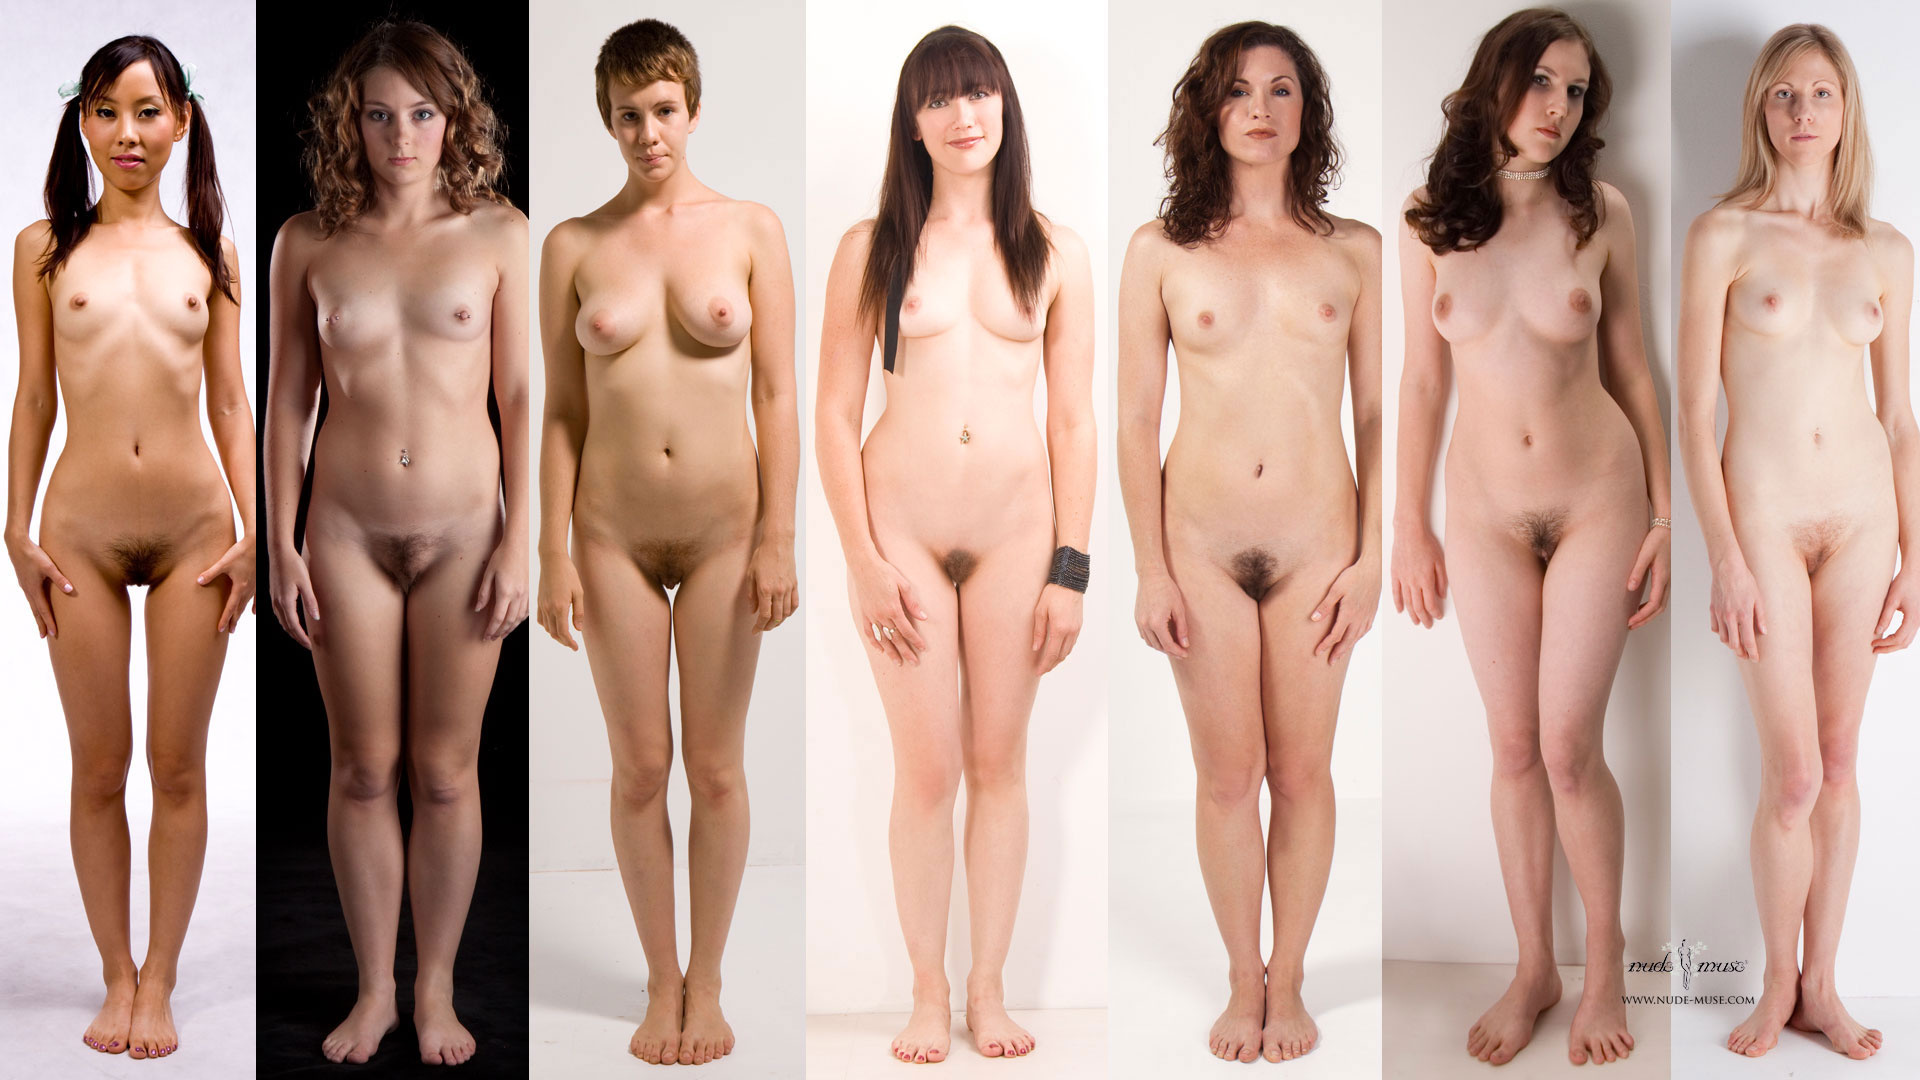 Nude pics of girls standing front view can